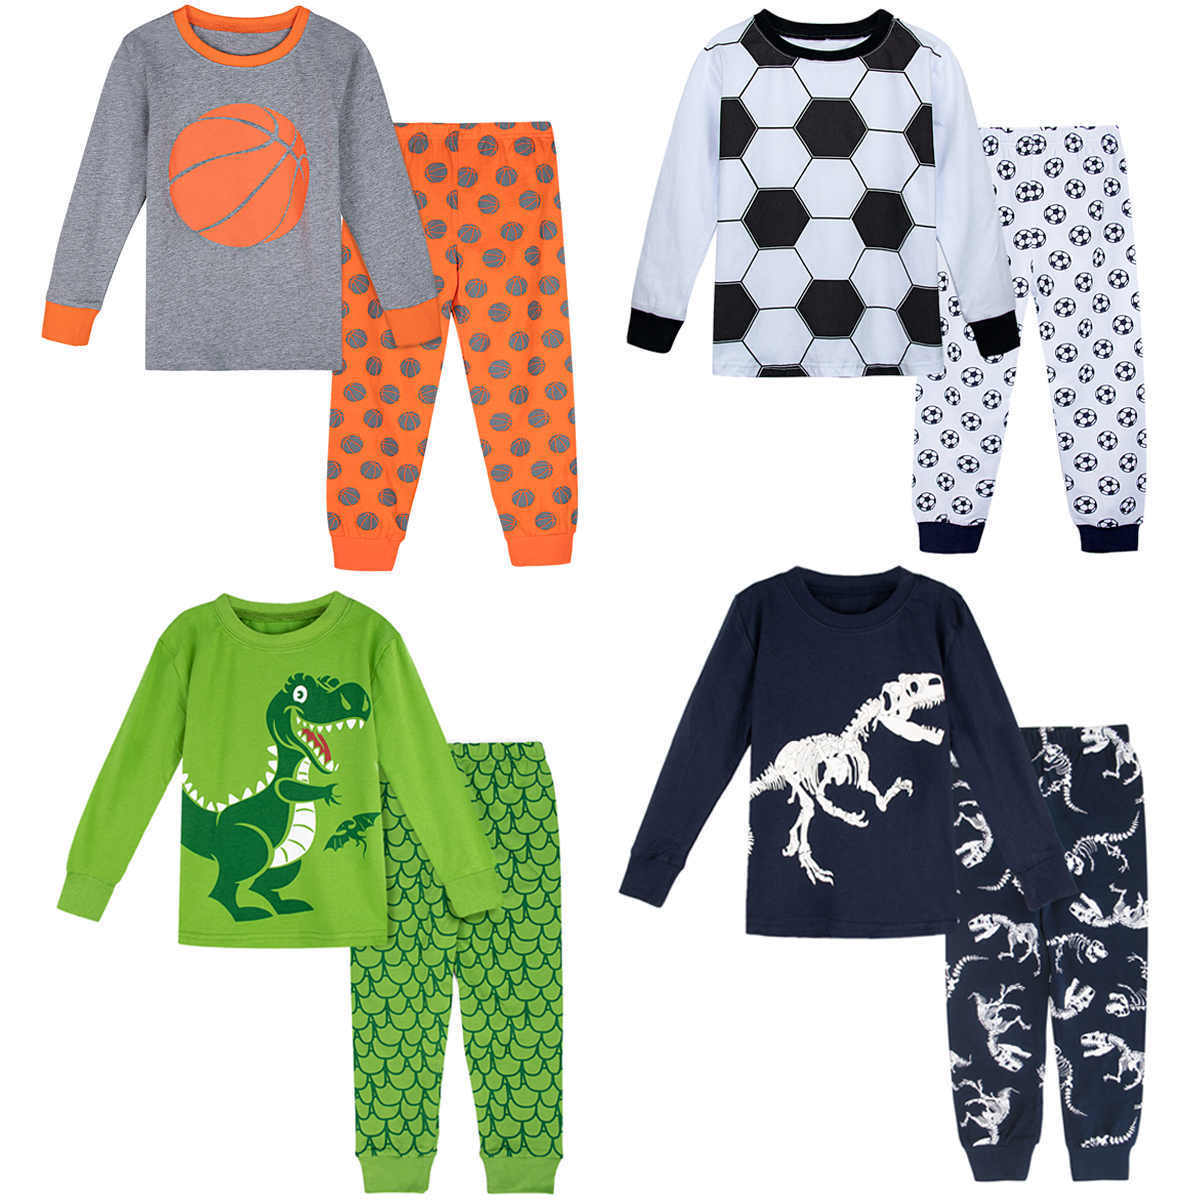 Kids Boys Dinosaur Pajamas Set Toddler Christmas Pjs Children Thanksgiving Xmas Sleepwear Child Pirate Sailor Nightwear title=